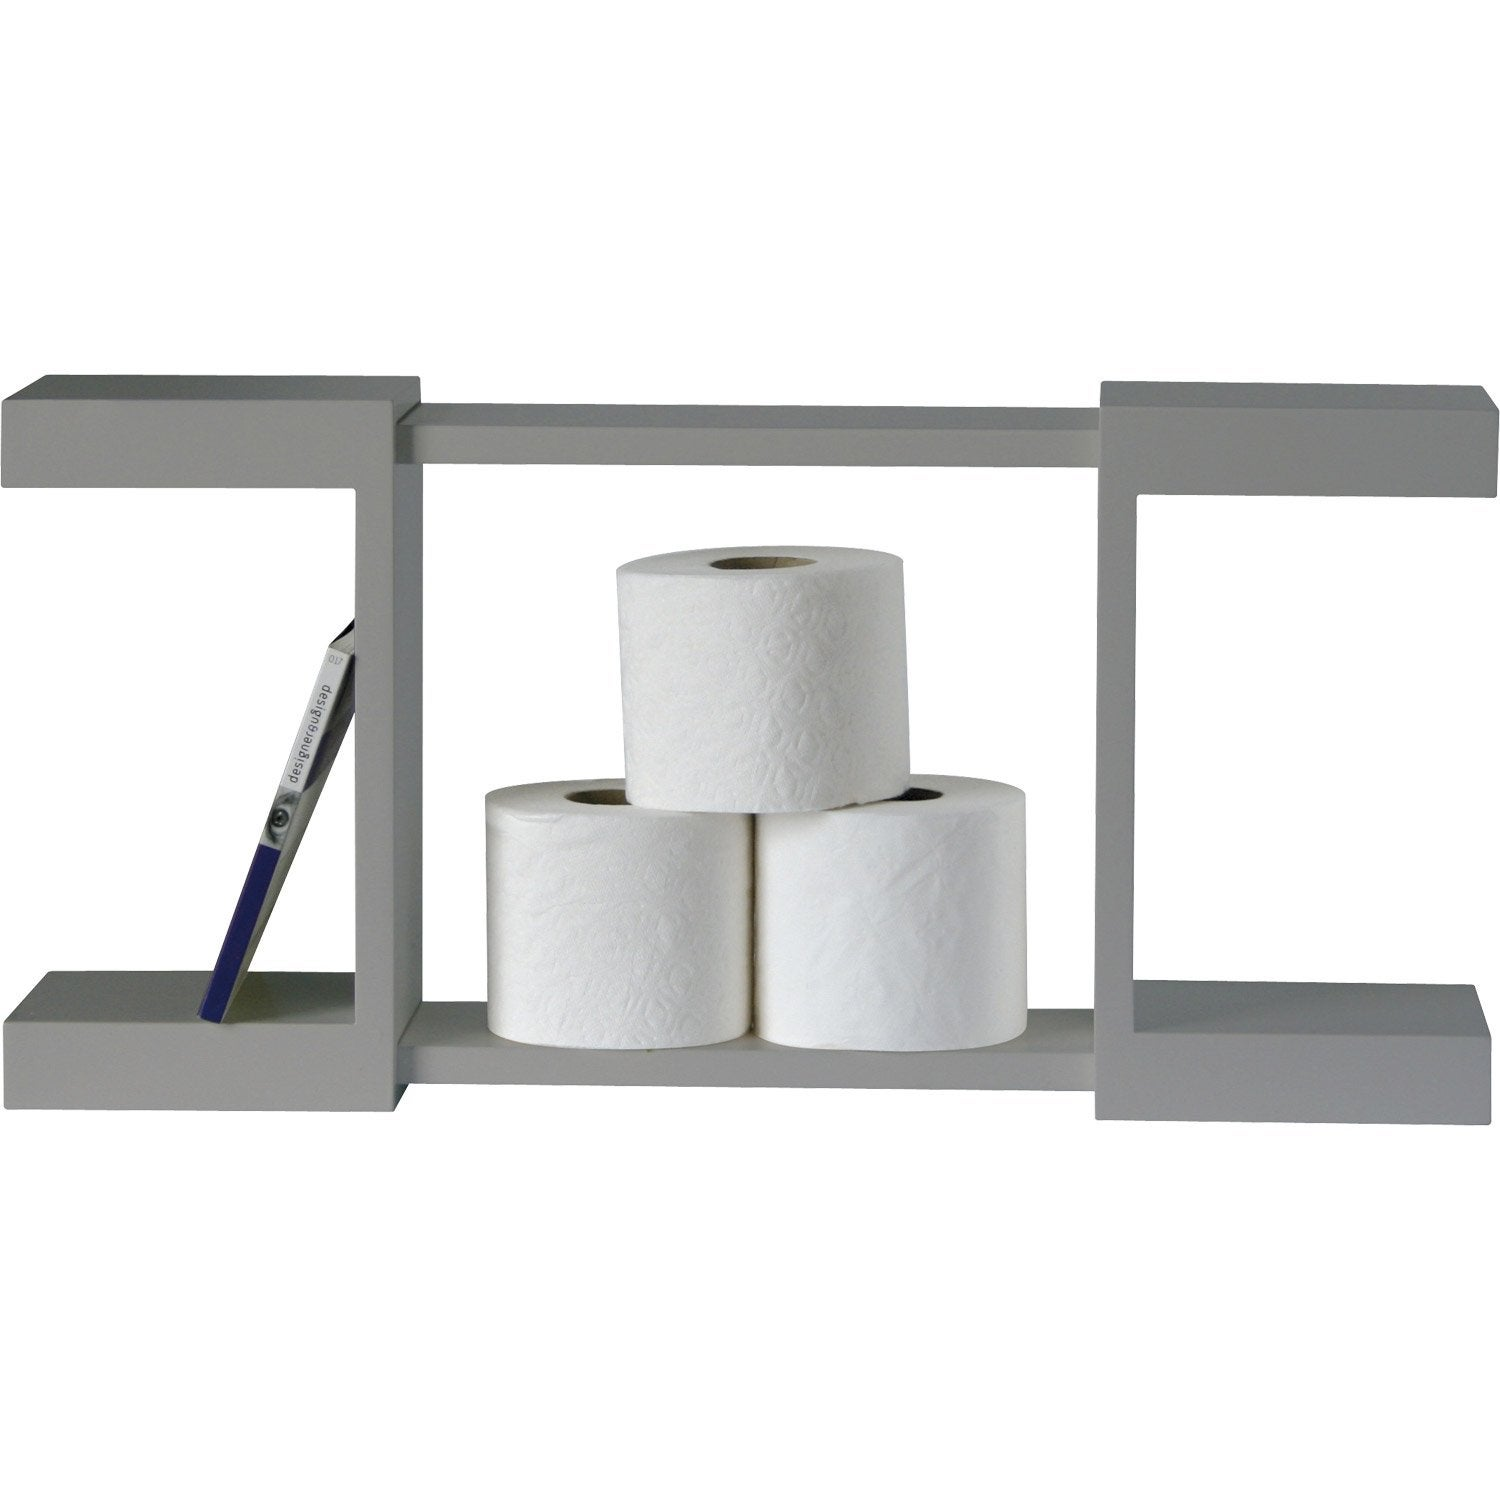 Etagere toilette for Meuble pour toilette castorama